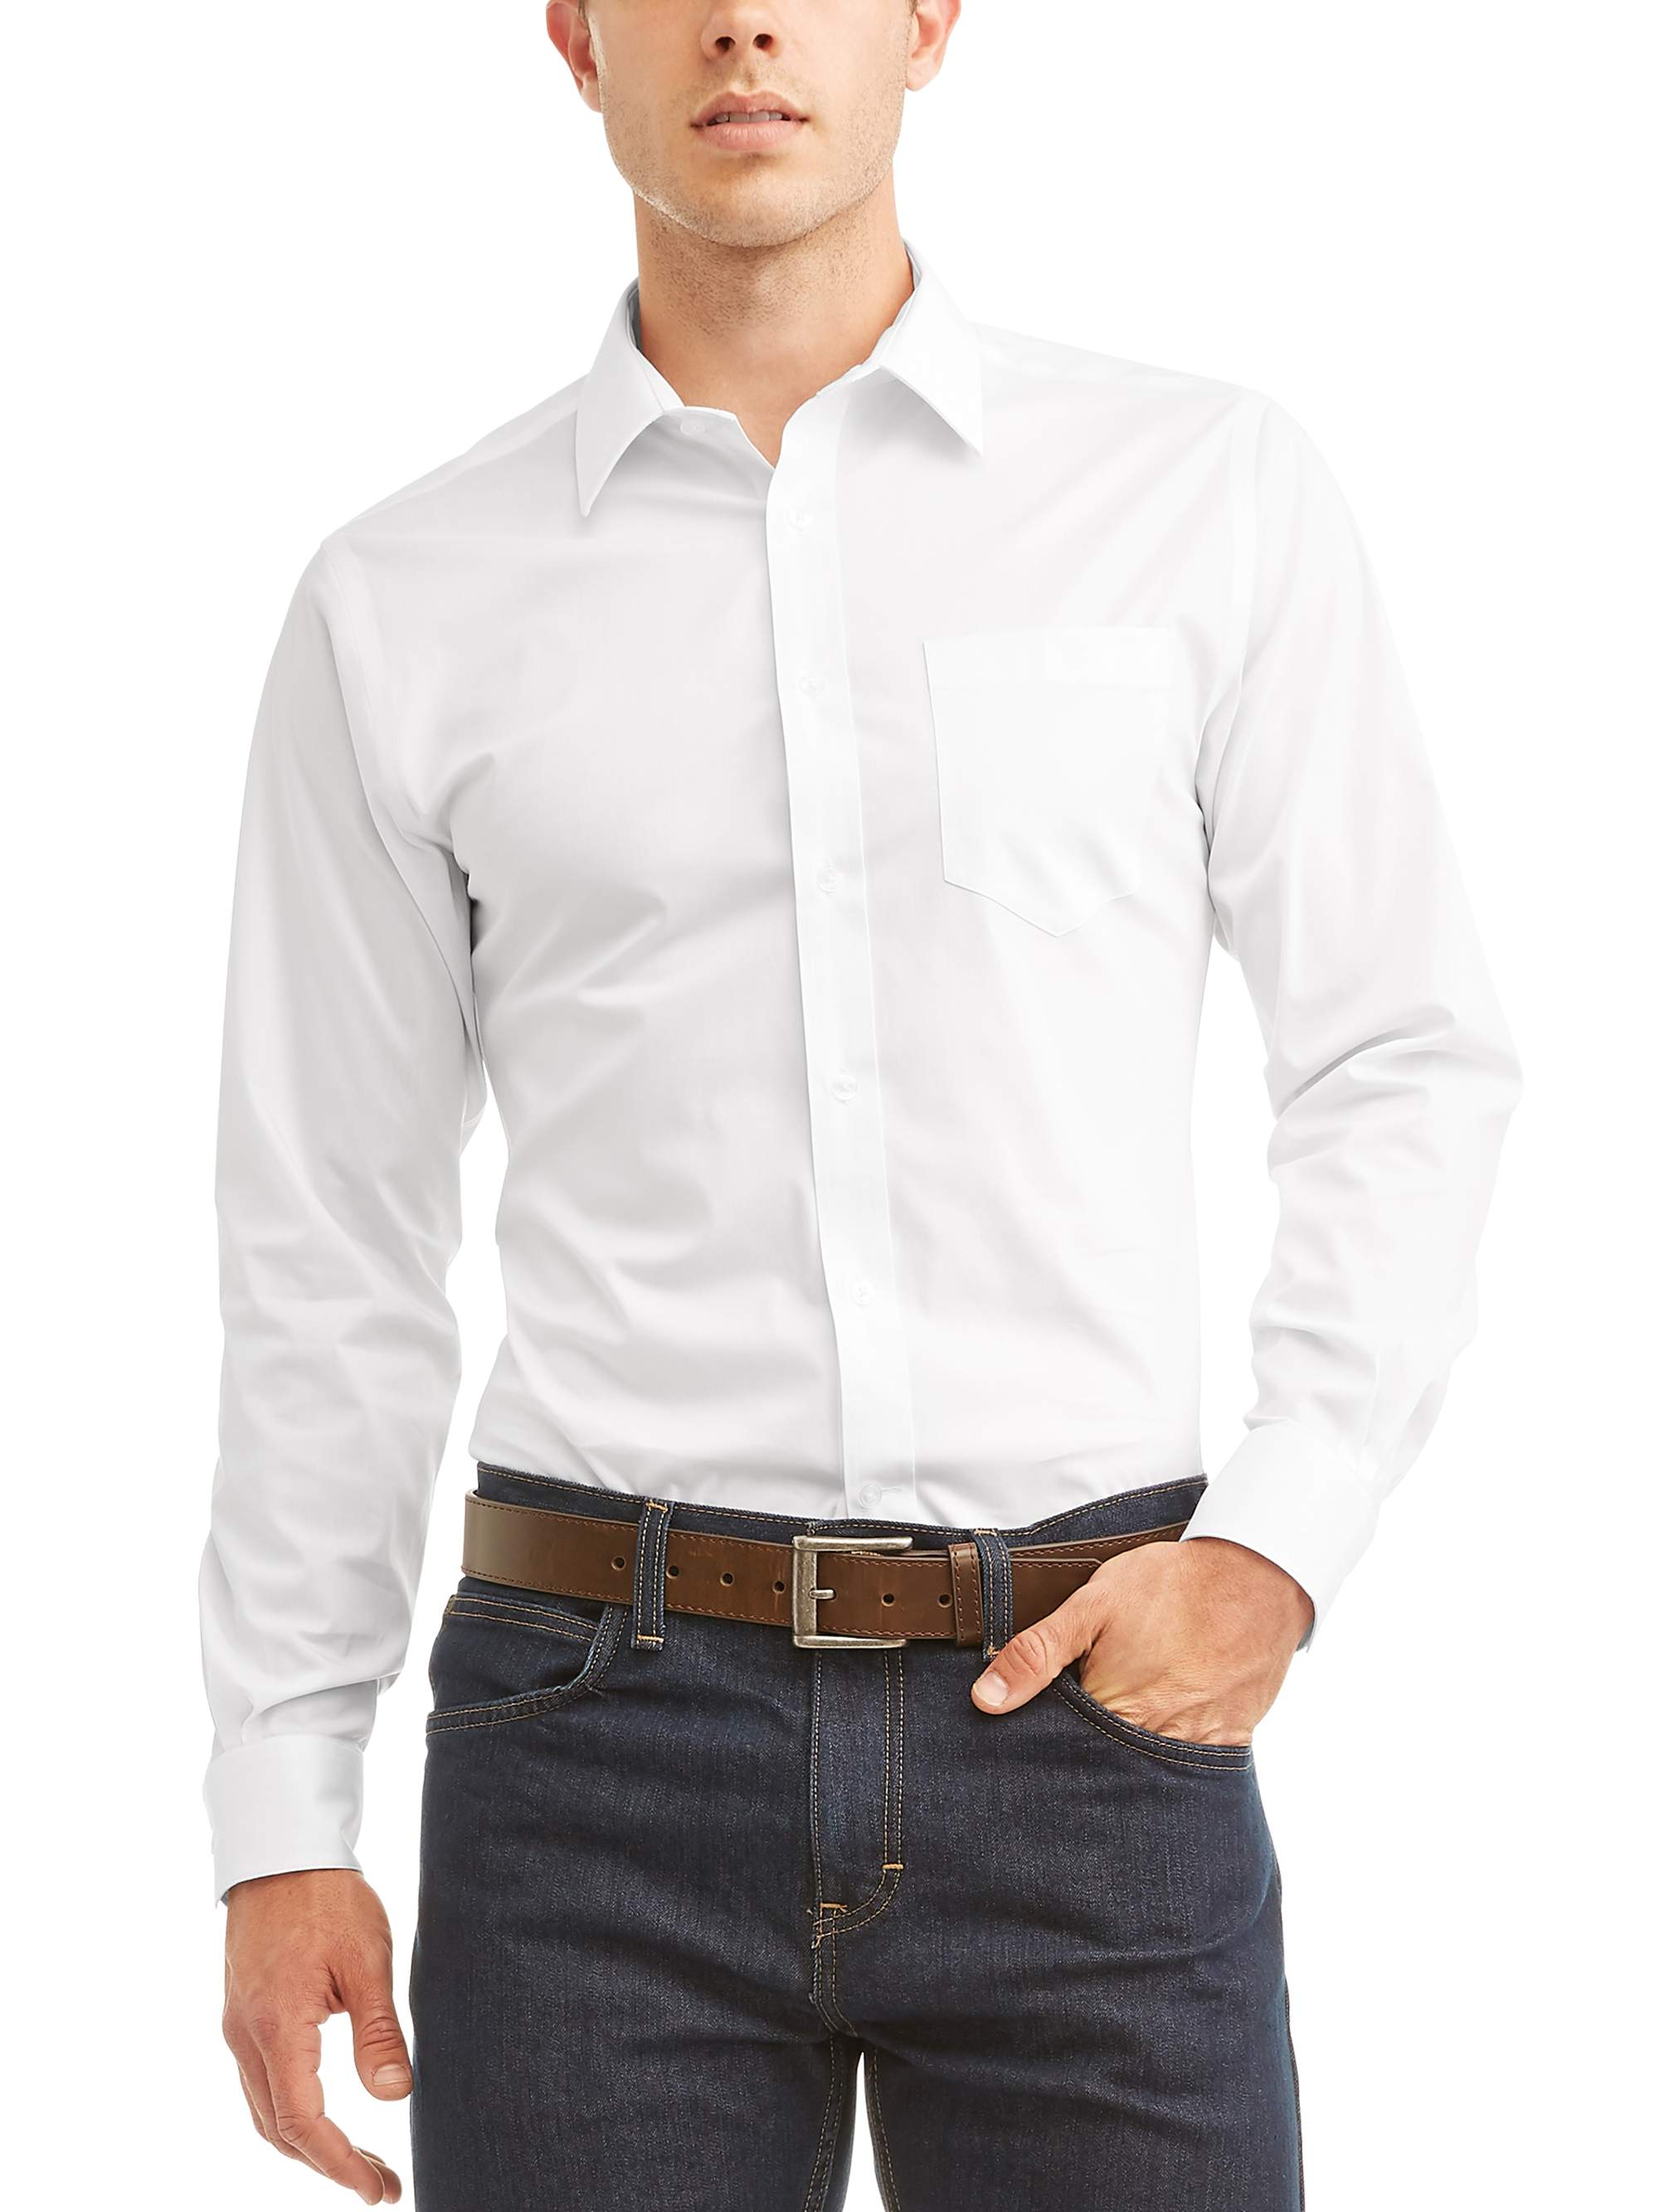 Mens Dress Shirts Walmart Com